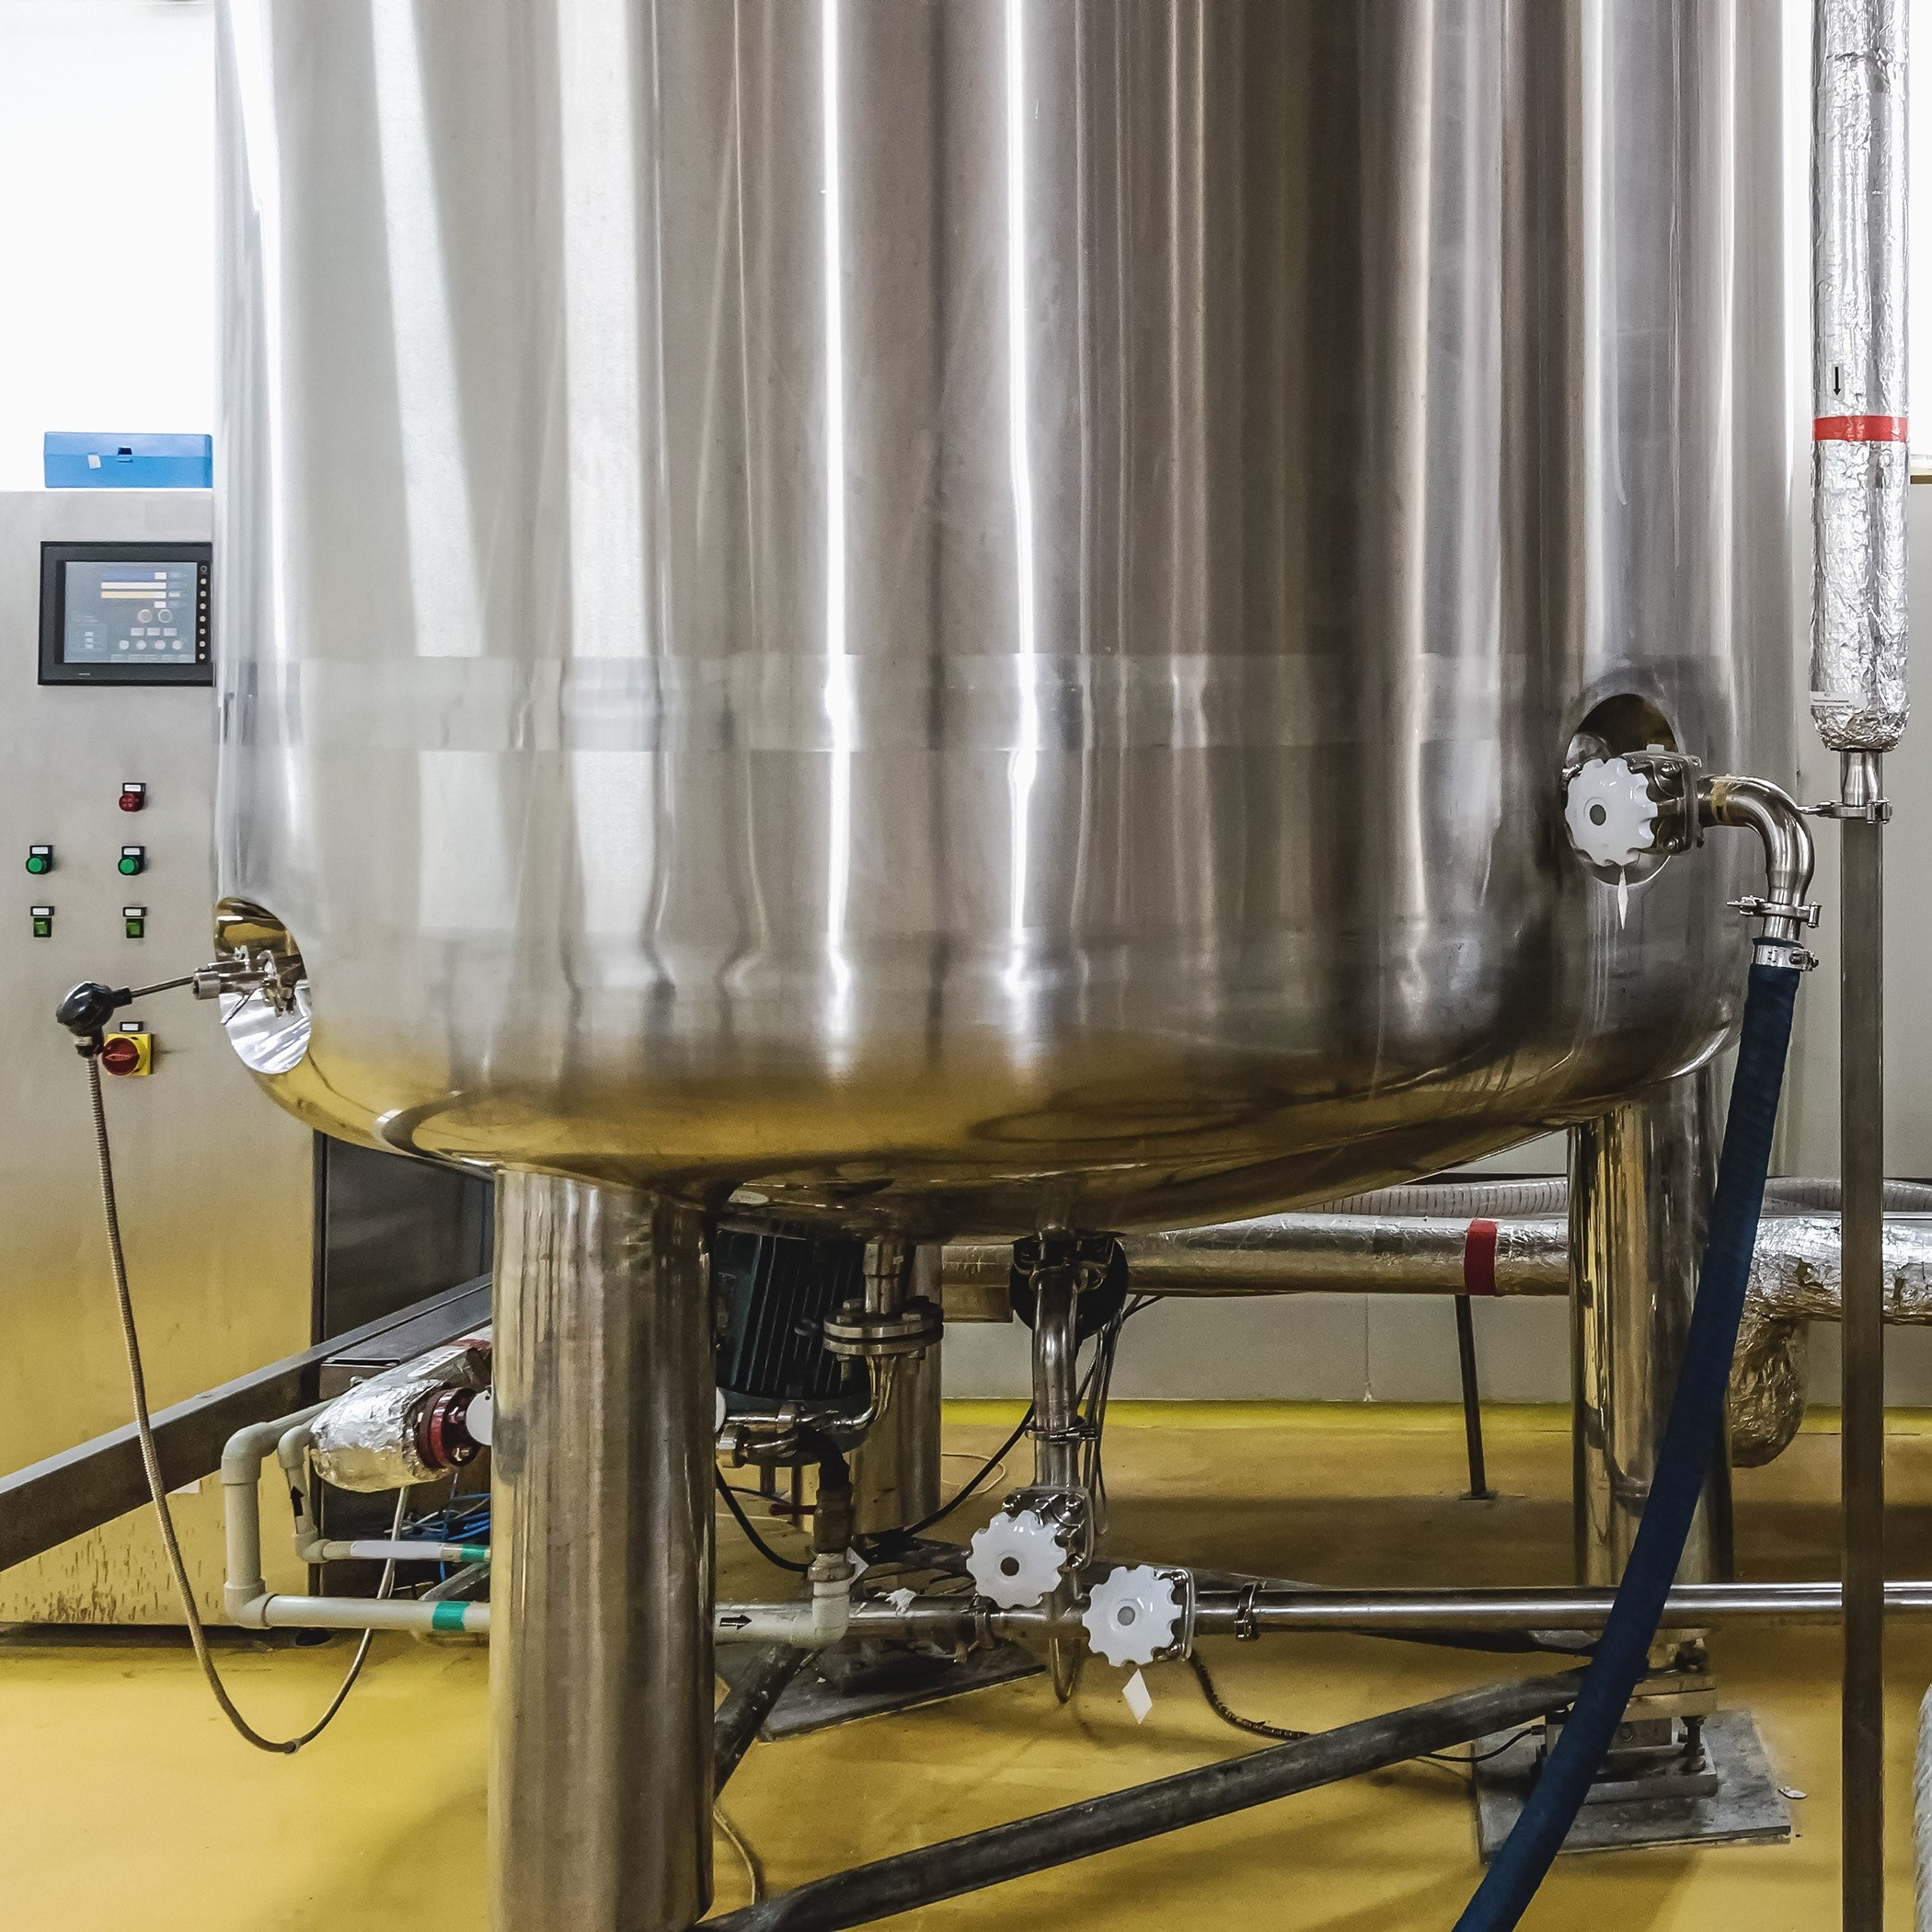 Considerations For Properly Measuring Tank Level